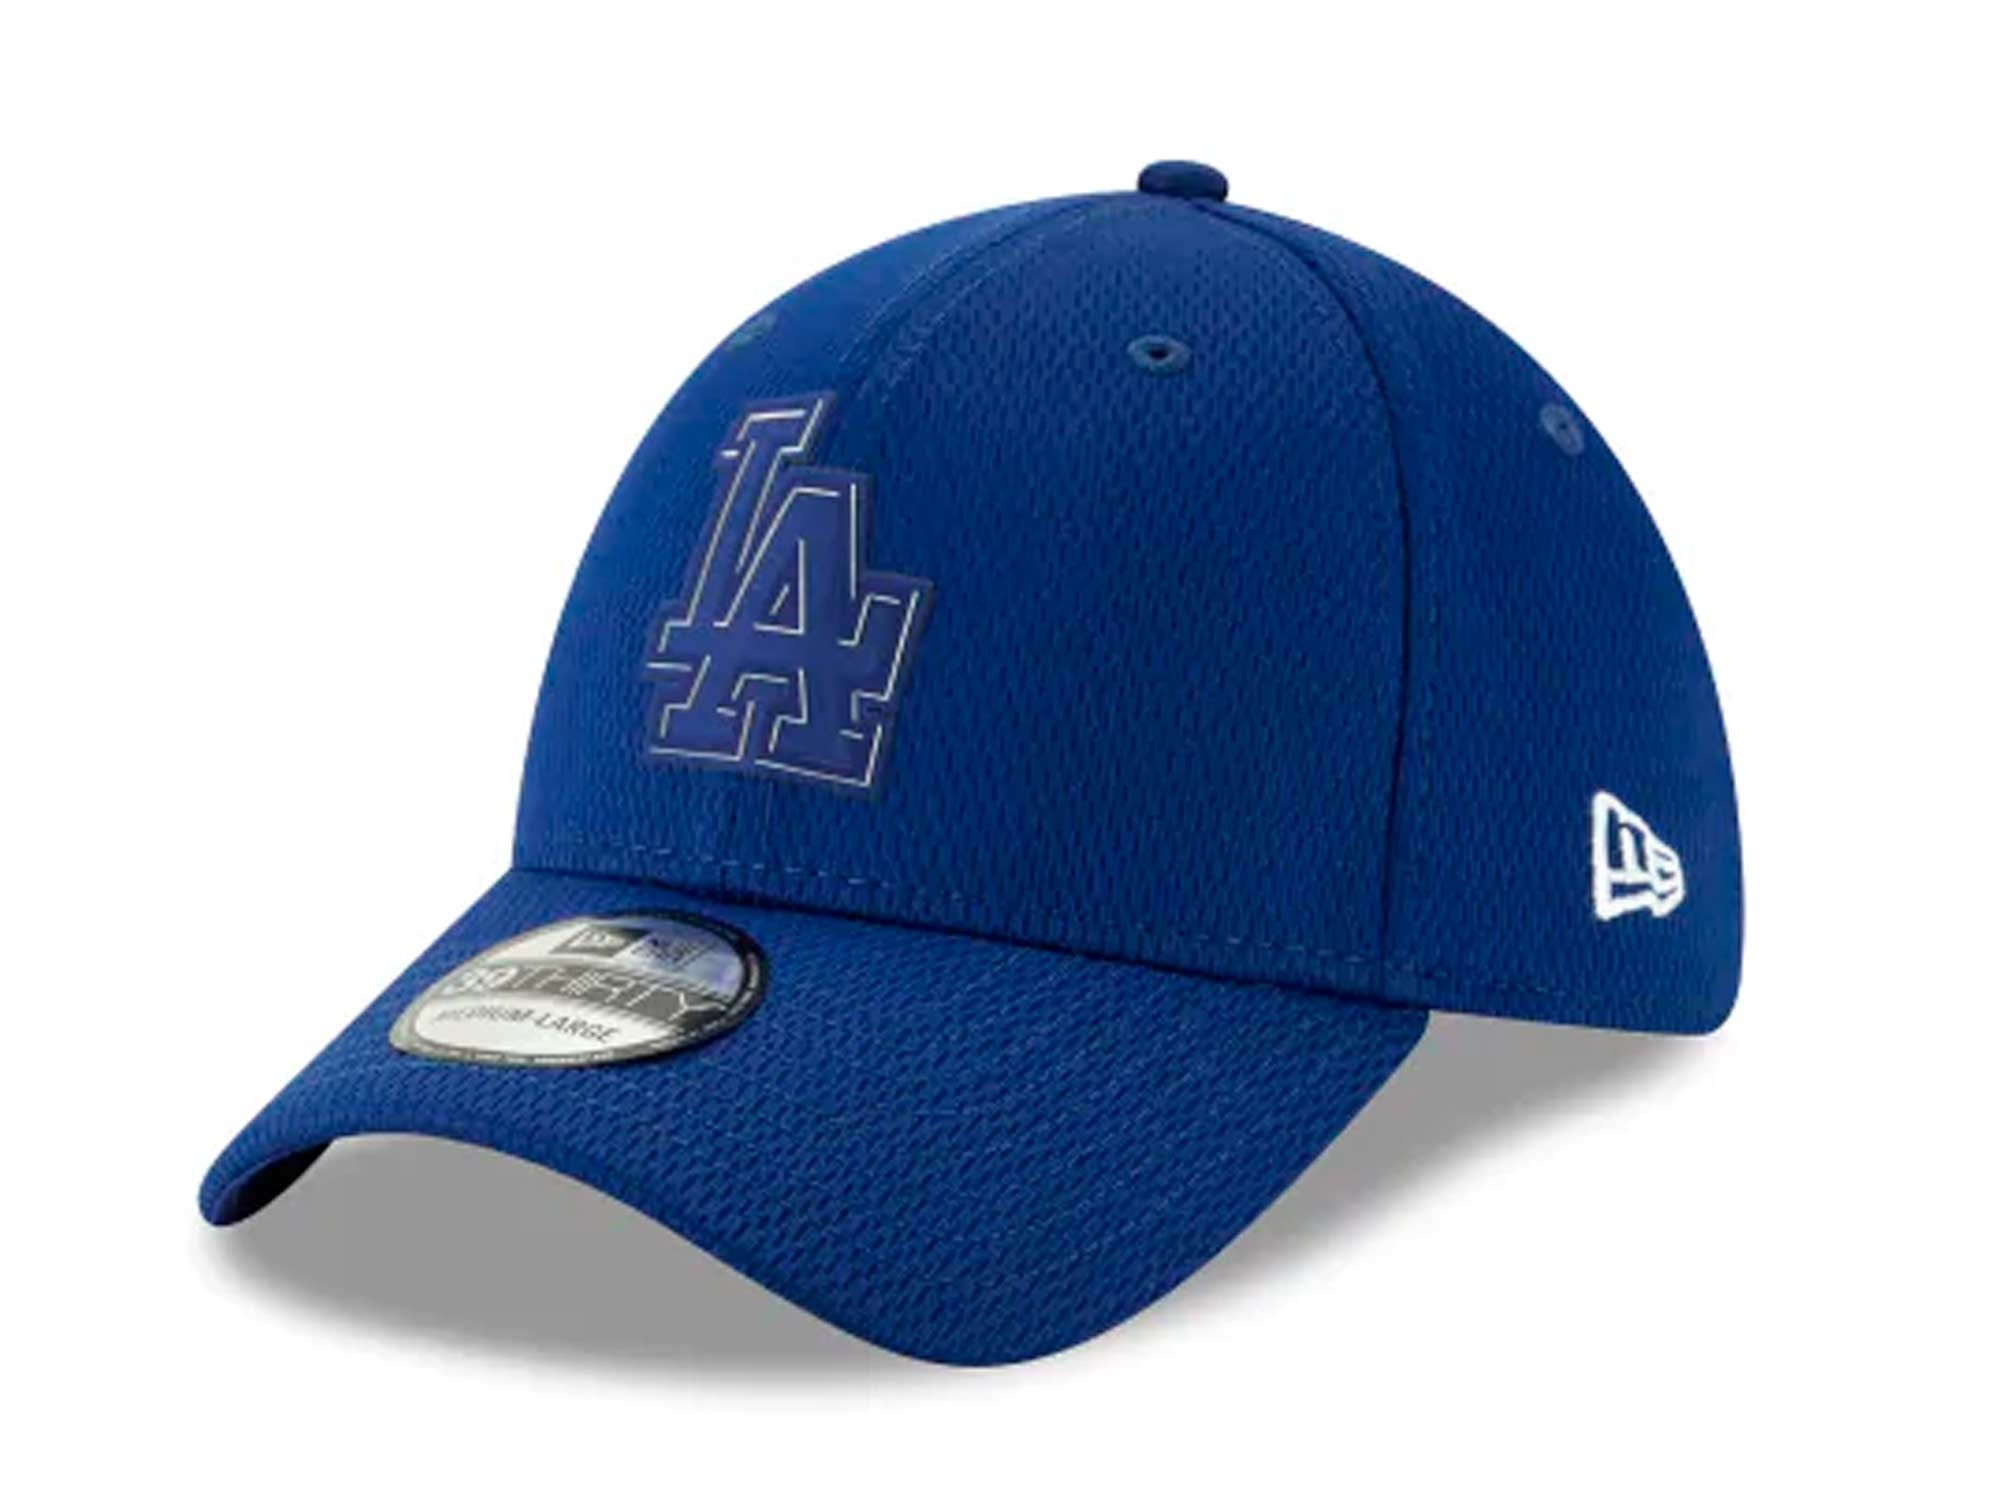 Jockey New Era 3930 Los Angeles Dodgers Unisex